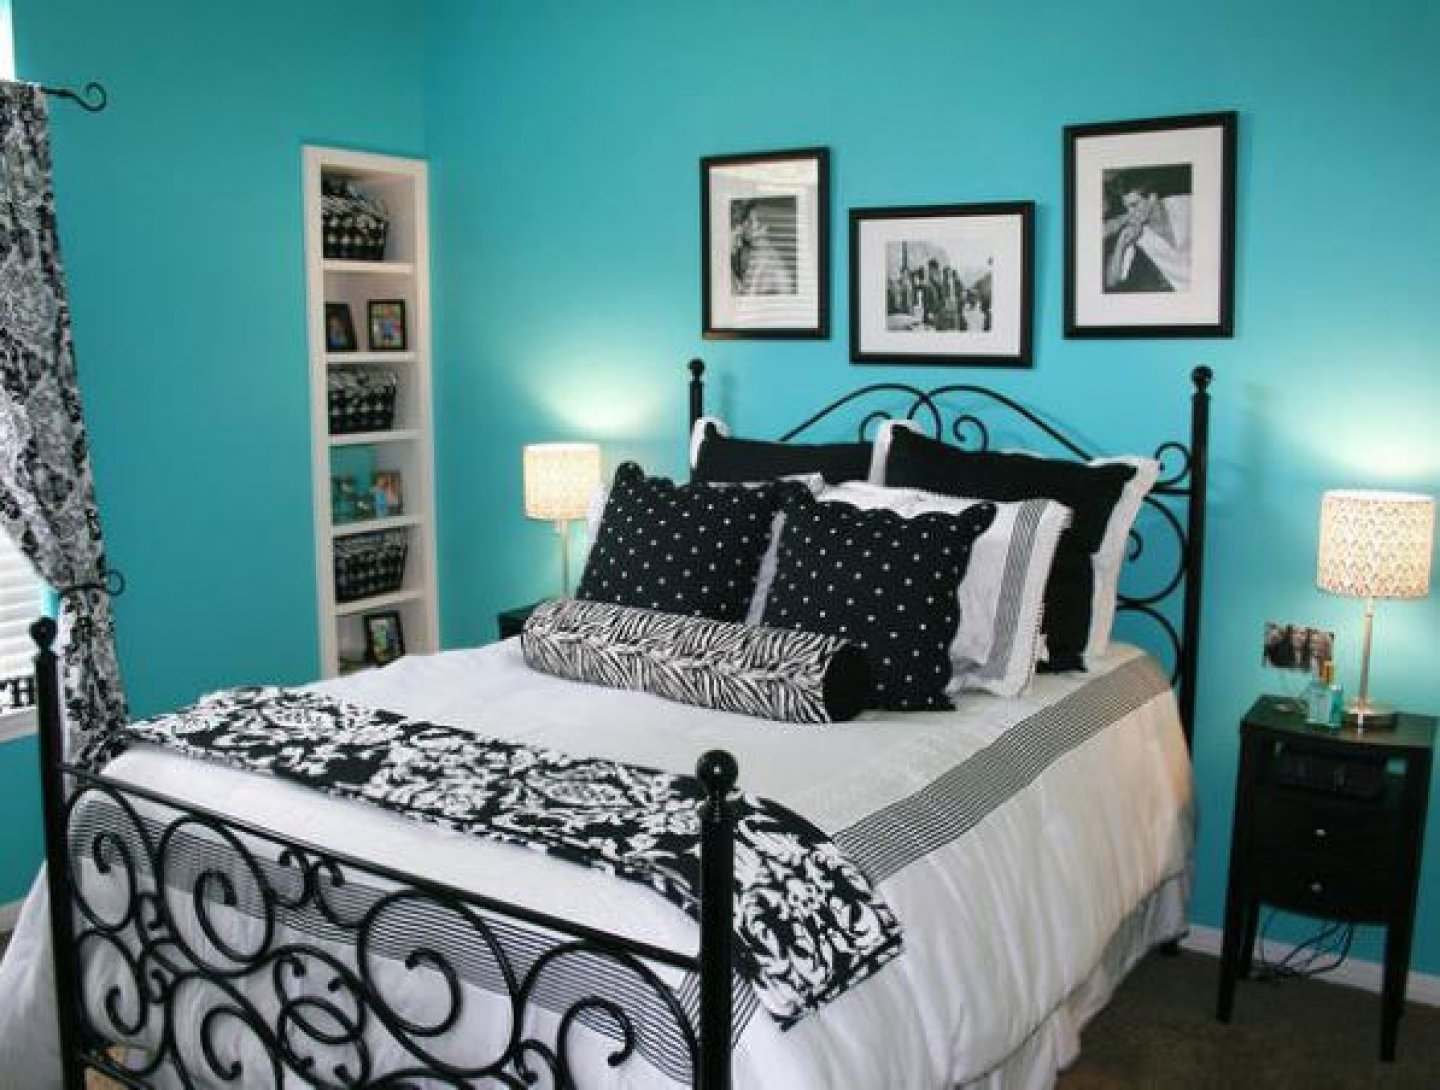 10 Most Recommended Ideas For Teenage Girls Rooms paint teenage girl room ideas 2955 2020